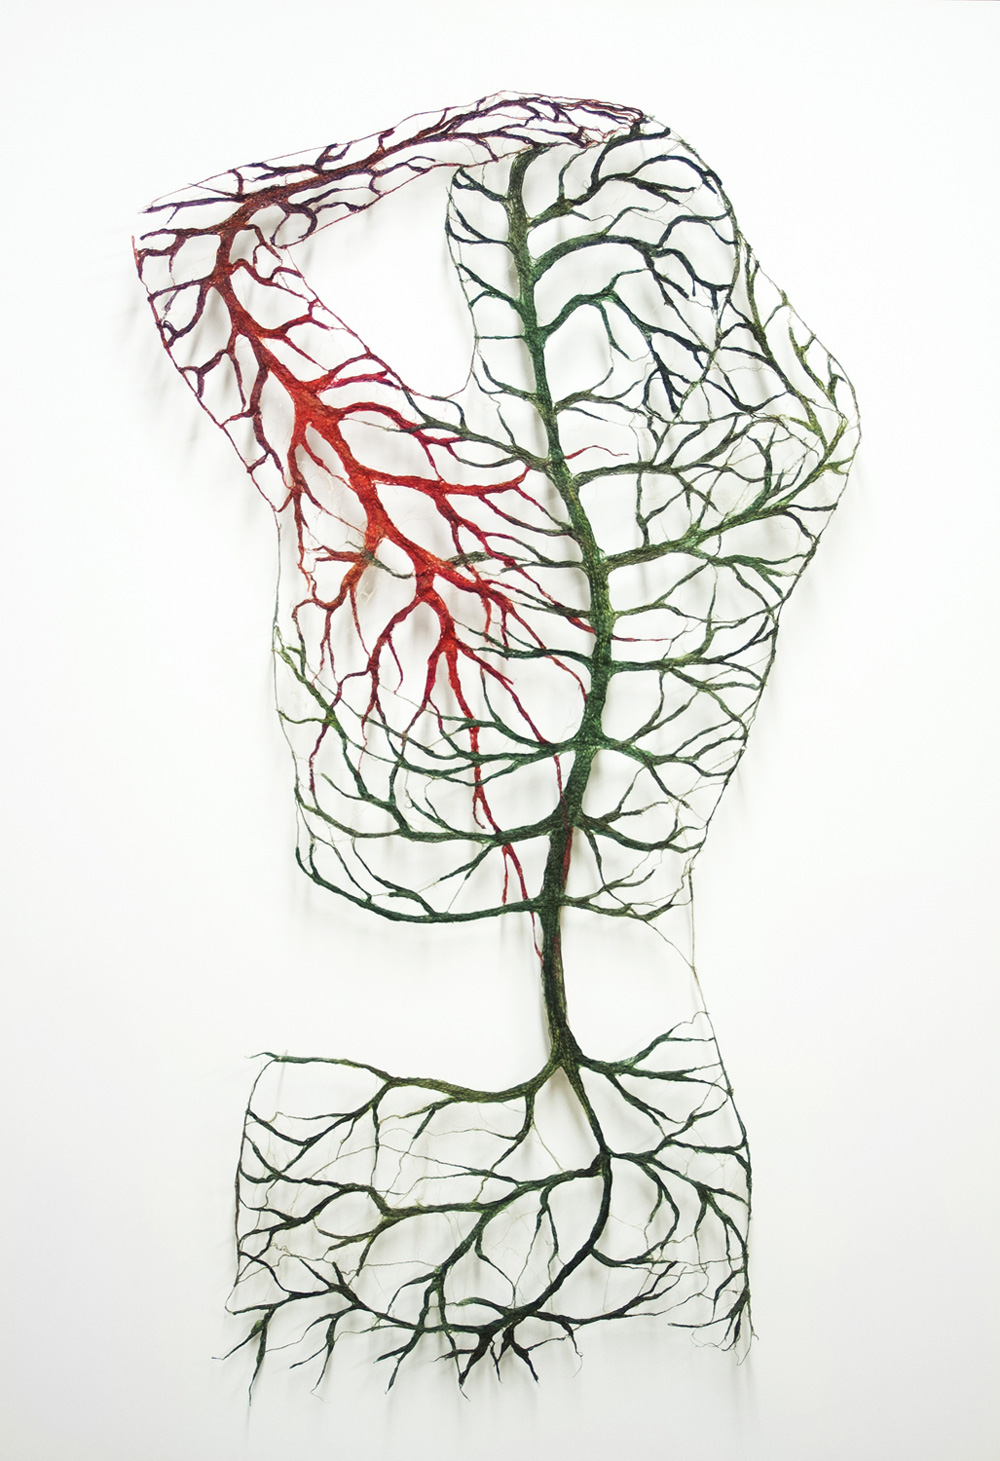 Textile Bodies Reveal Branched Systems of Veins, Flowers and Roots by Raija Jokinen (13 pics)